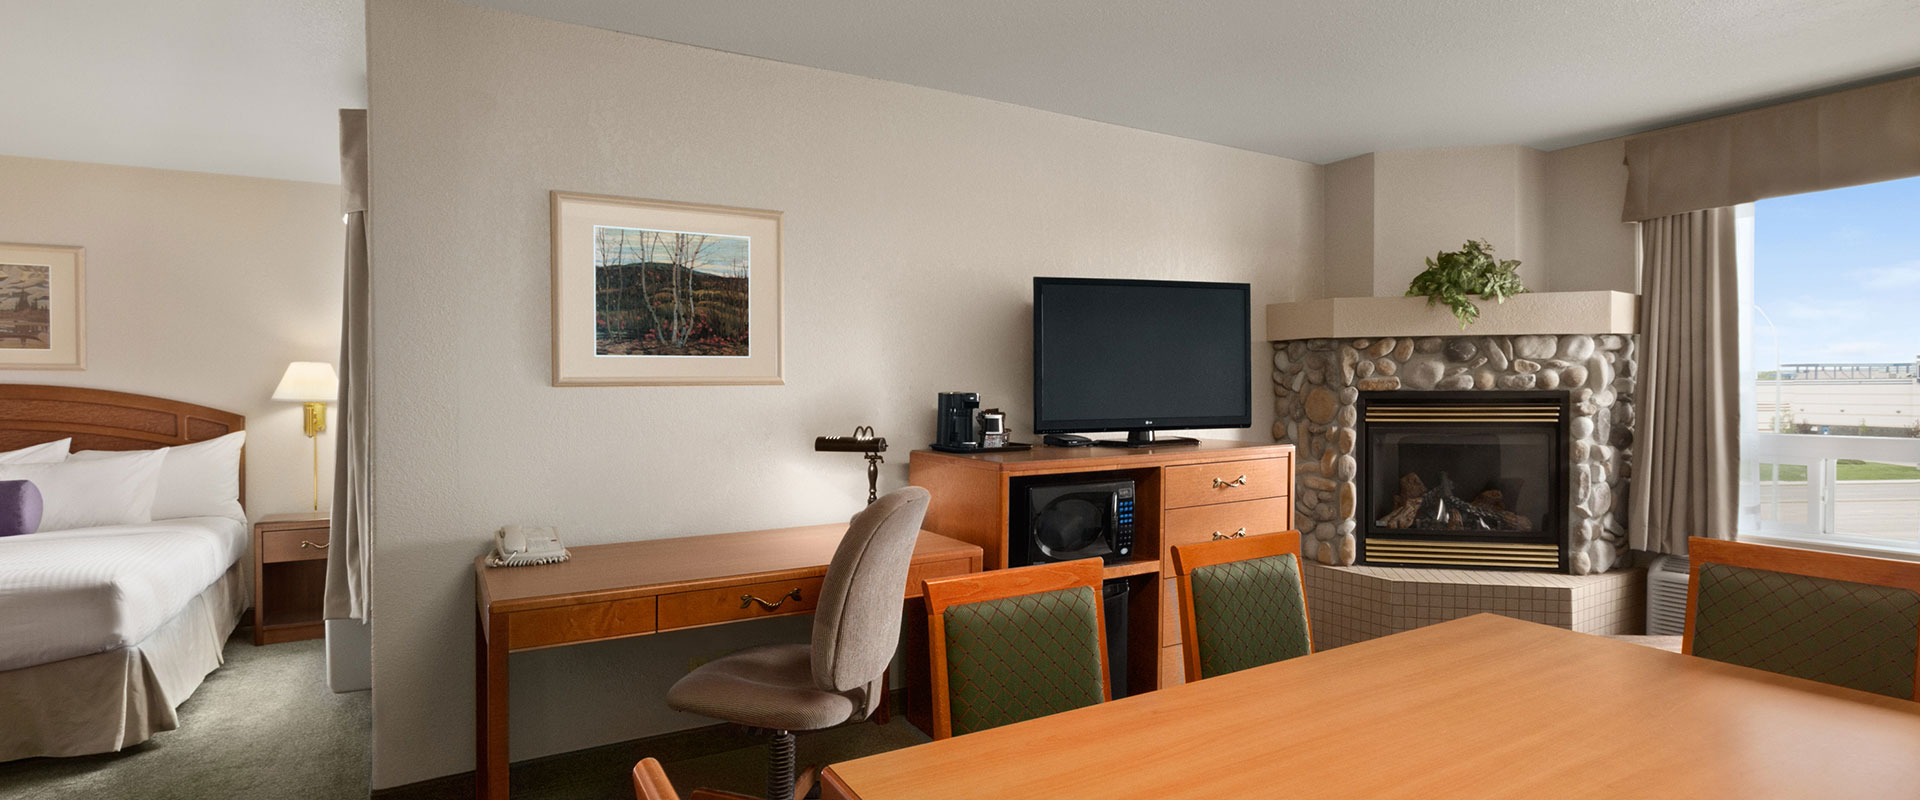 Large view of a one bed suite with workspace, office chair, TV, microwave and stone fireplace at Days Inn Red Deer, Alberta.